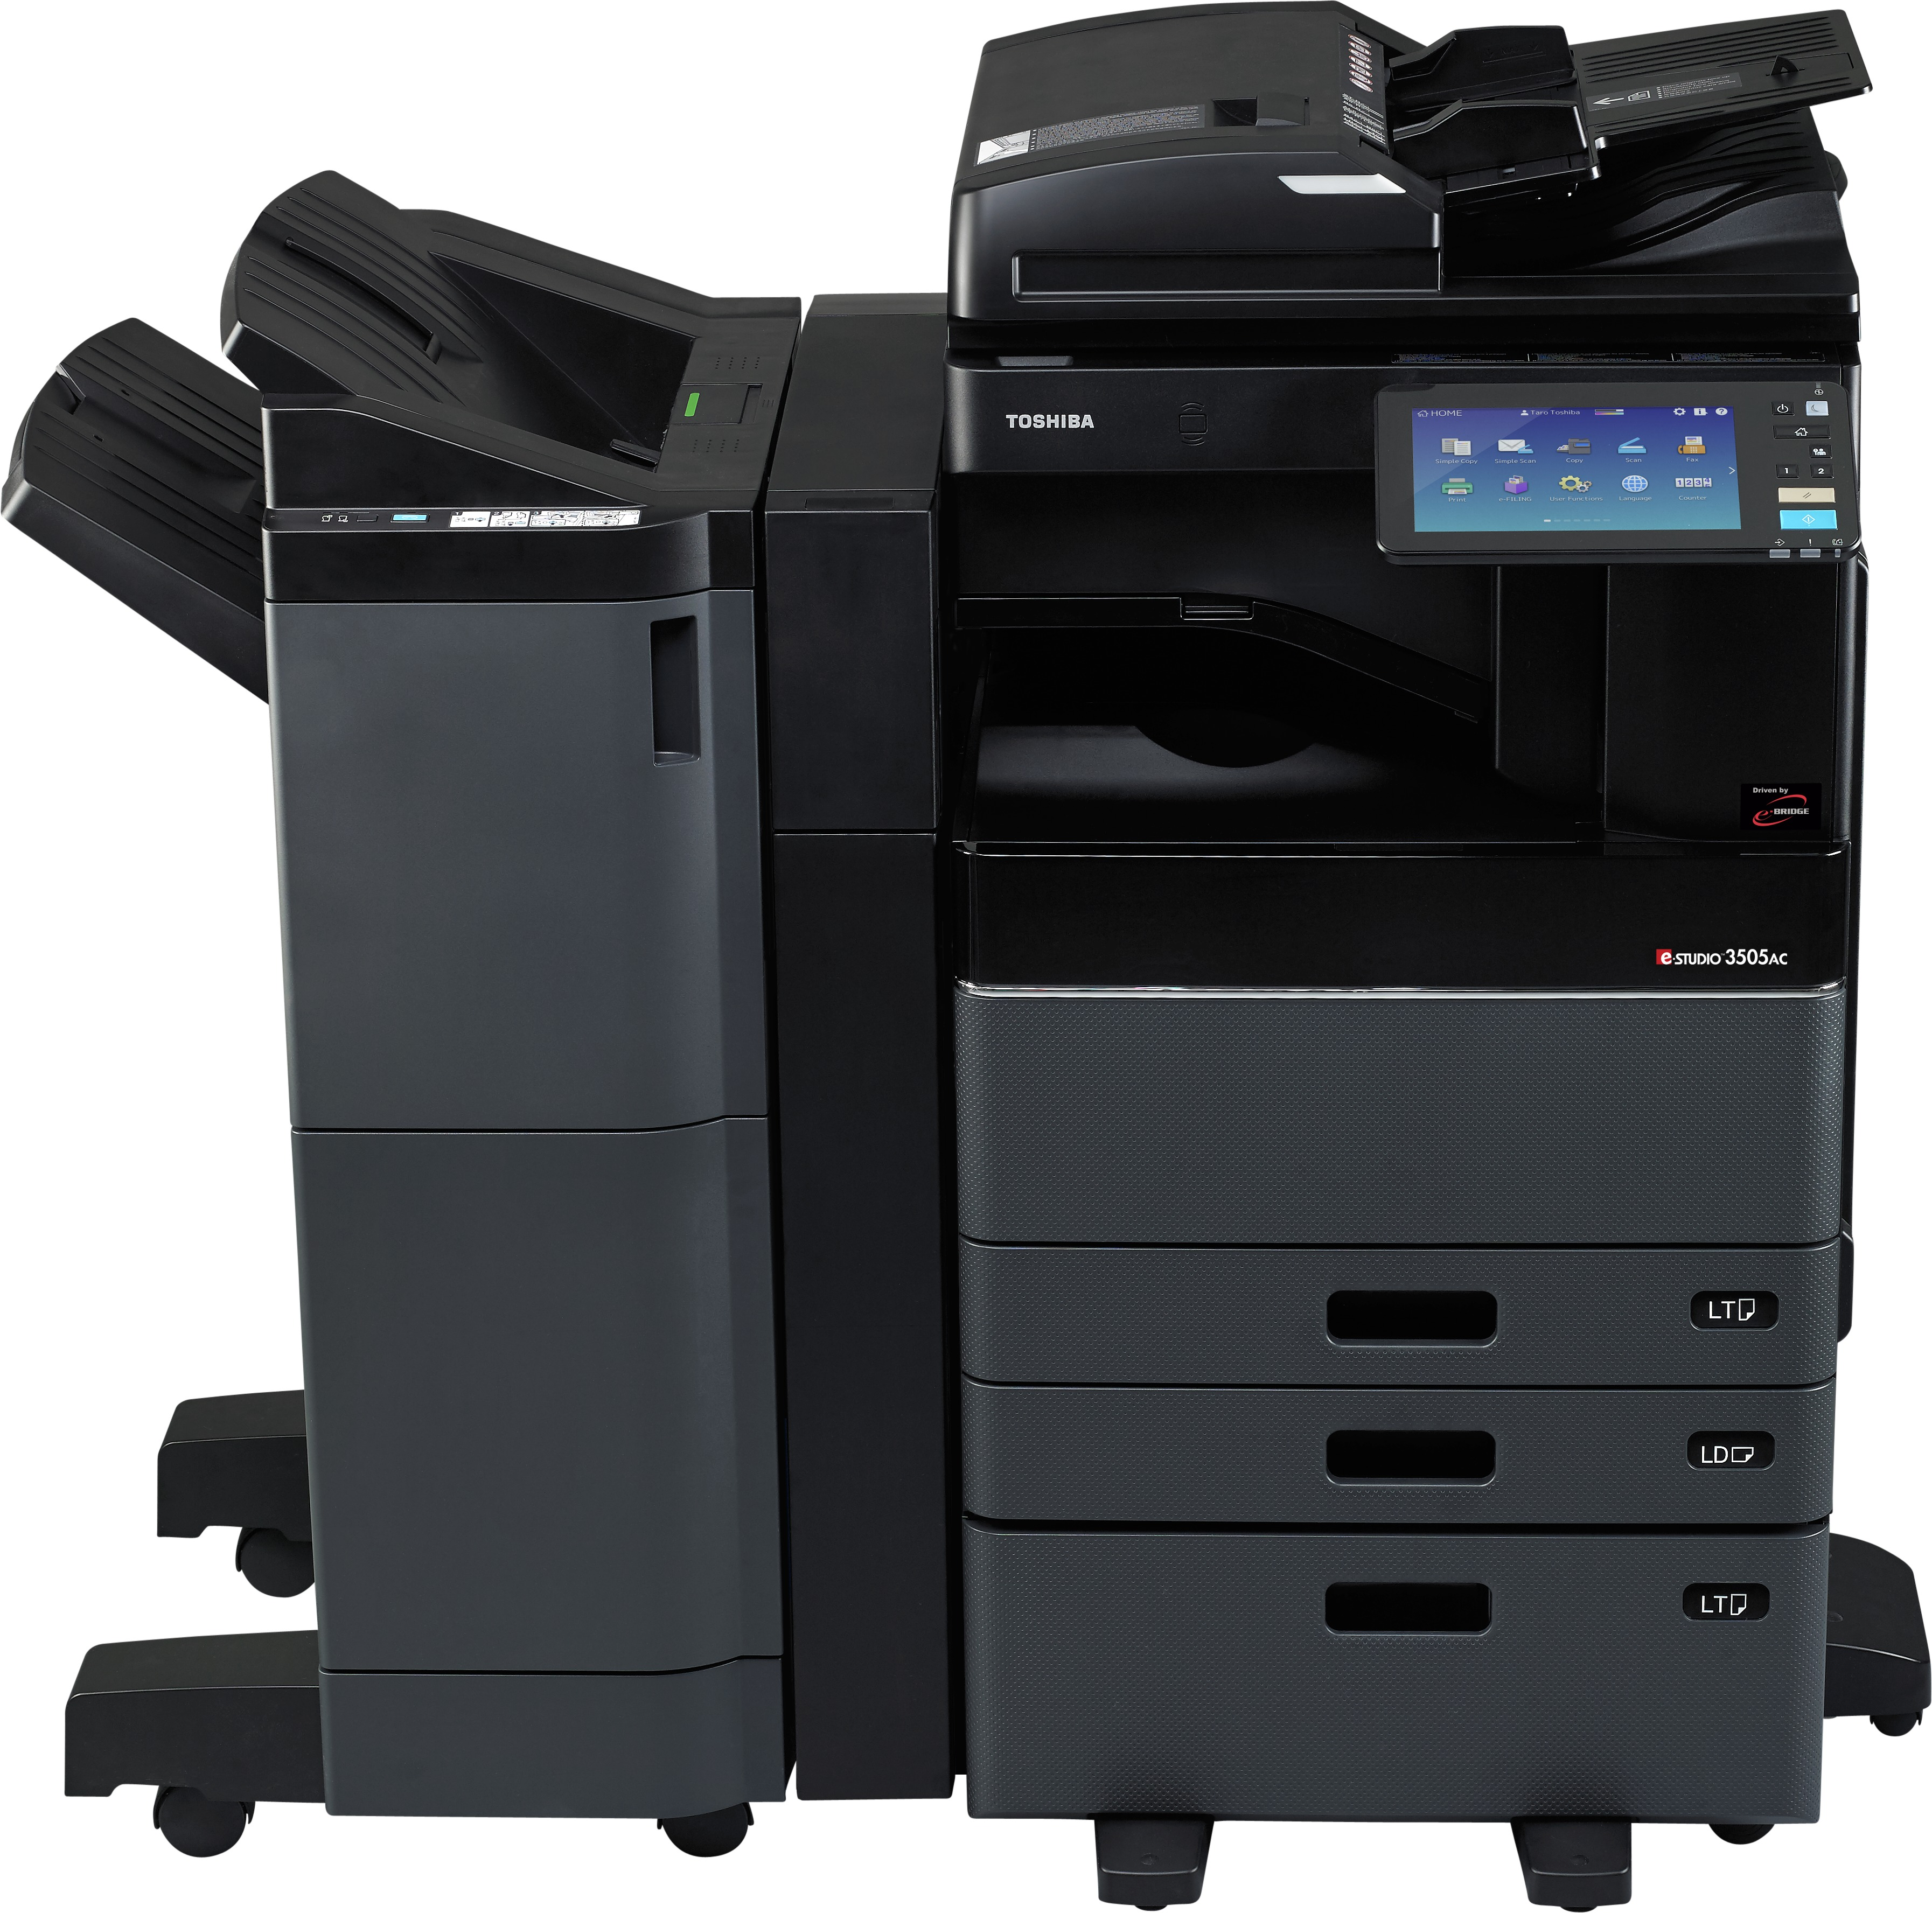 Toshiba e-Studio 3505AC Copier/Printer